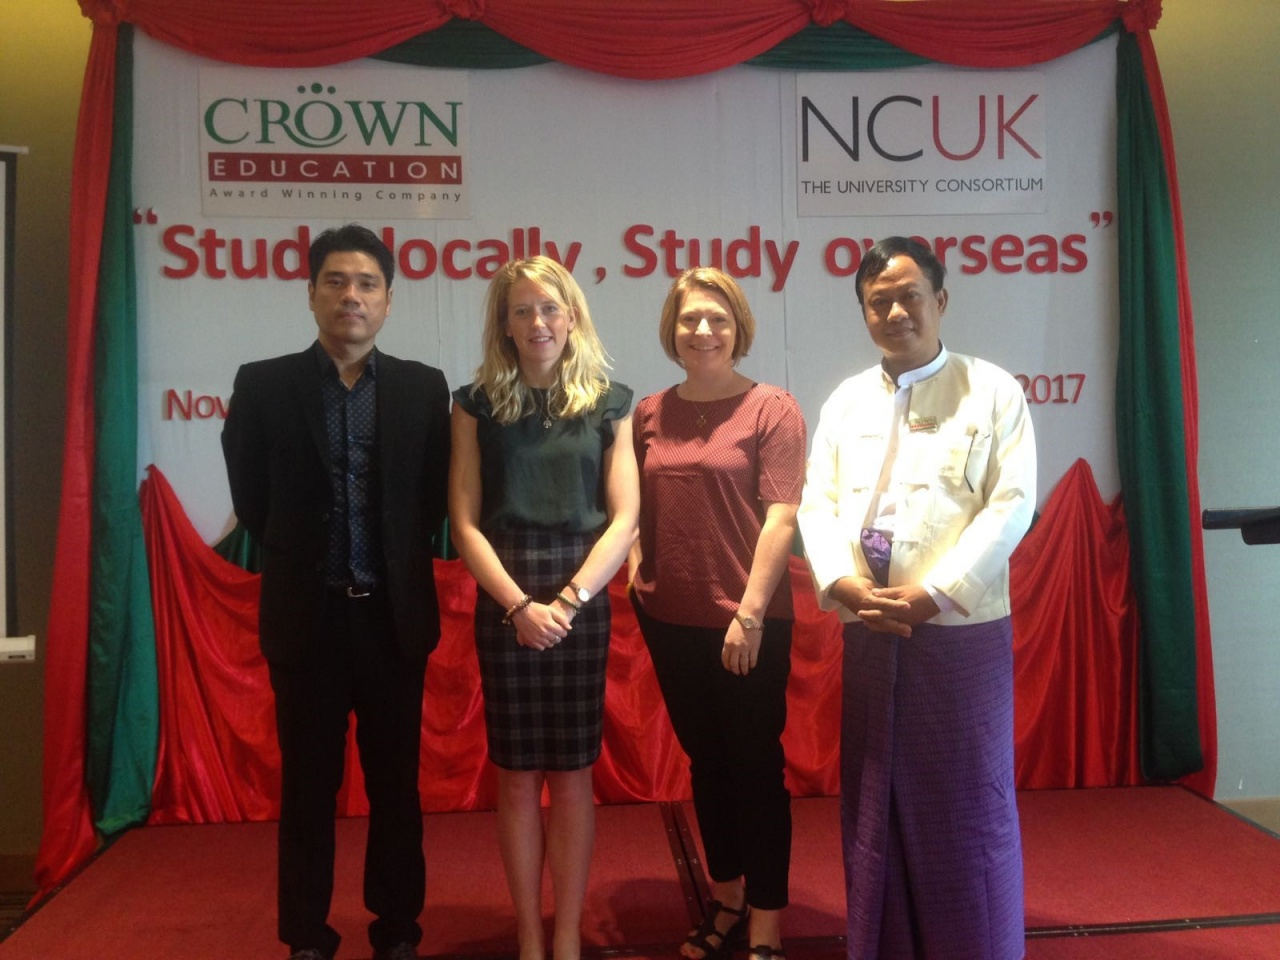 (Photo L to R: James U Aung Kyaw San, Managing Director, Crown Education; Amy-Rose Cauley, Market Development Manager, NCUK; Katy Christie, Regional Director NCUK; Dr. Khin Aung Than, Principal, Royal Academic Institute.)